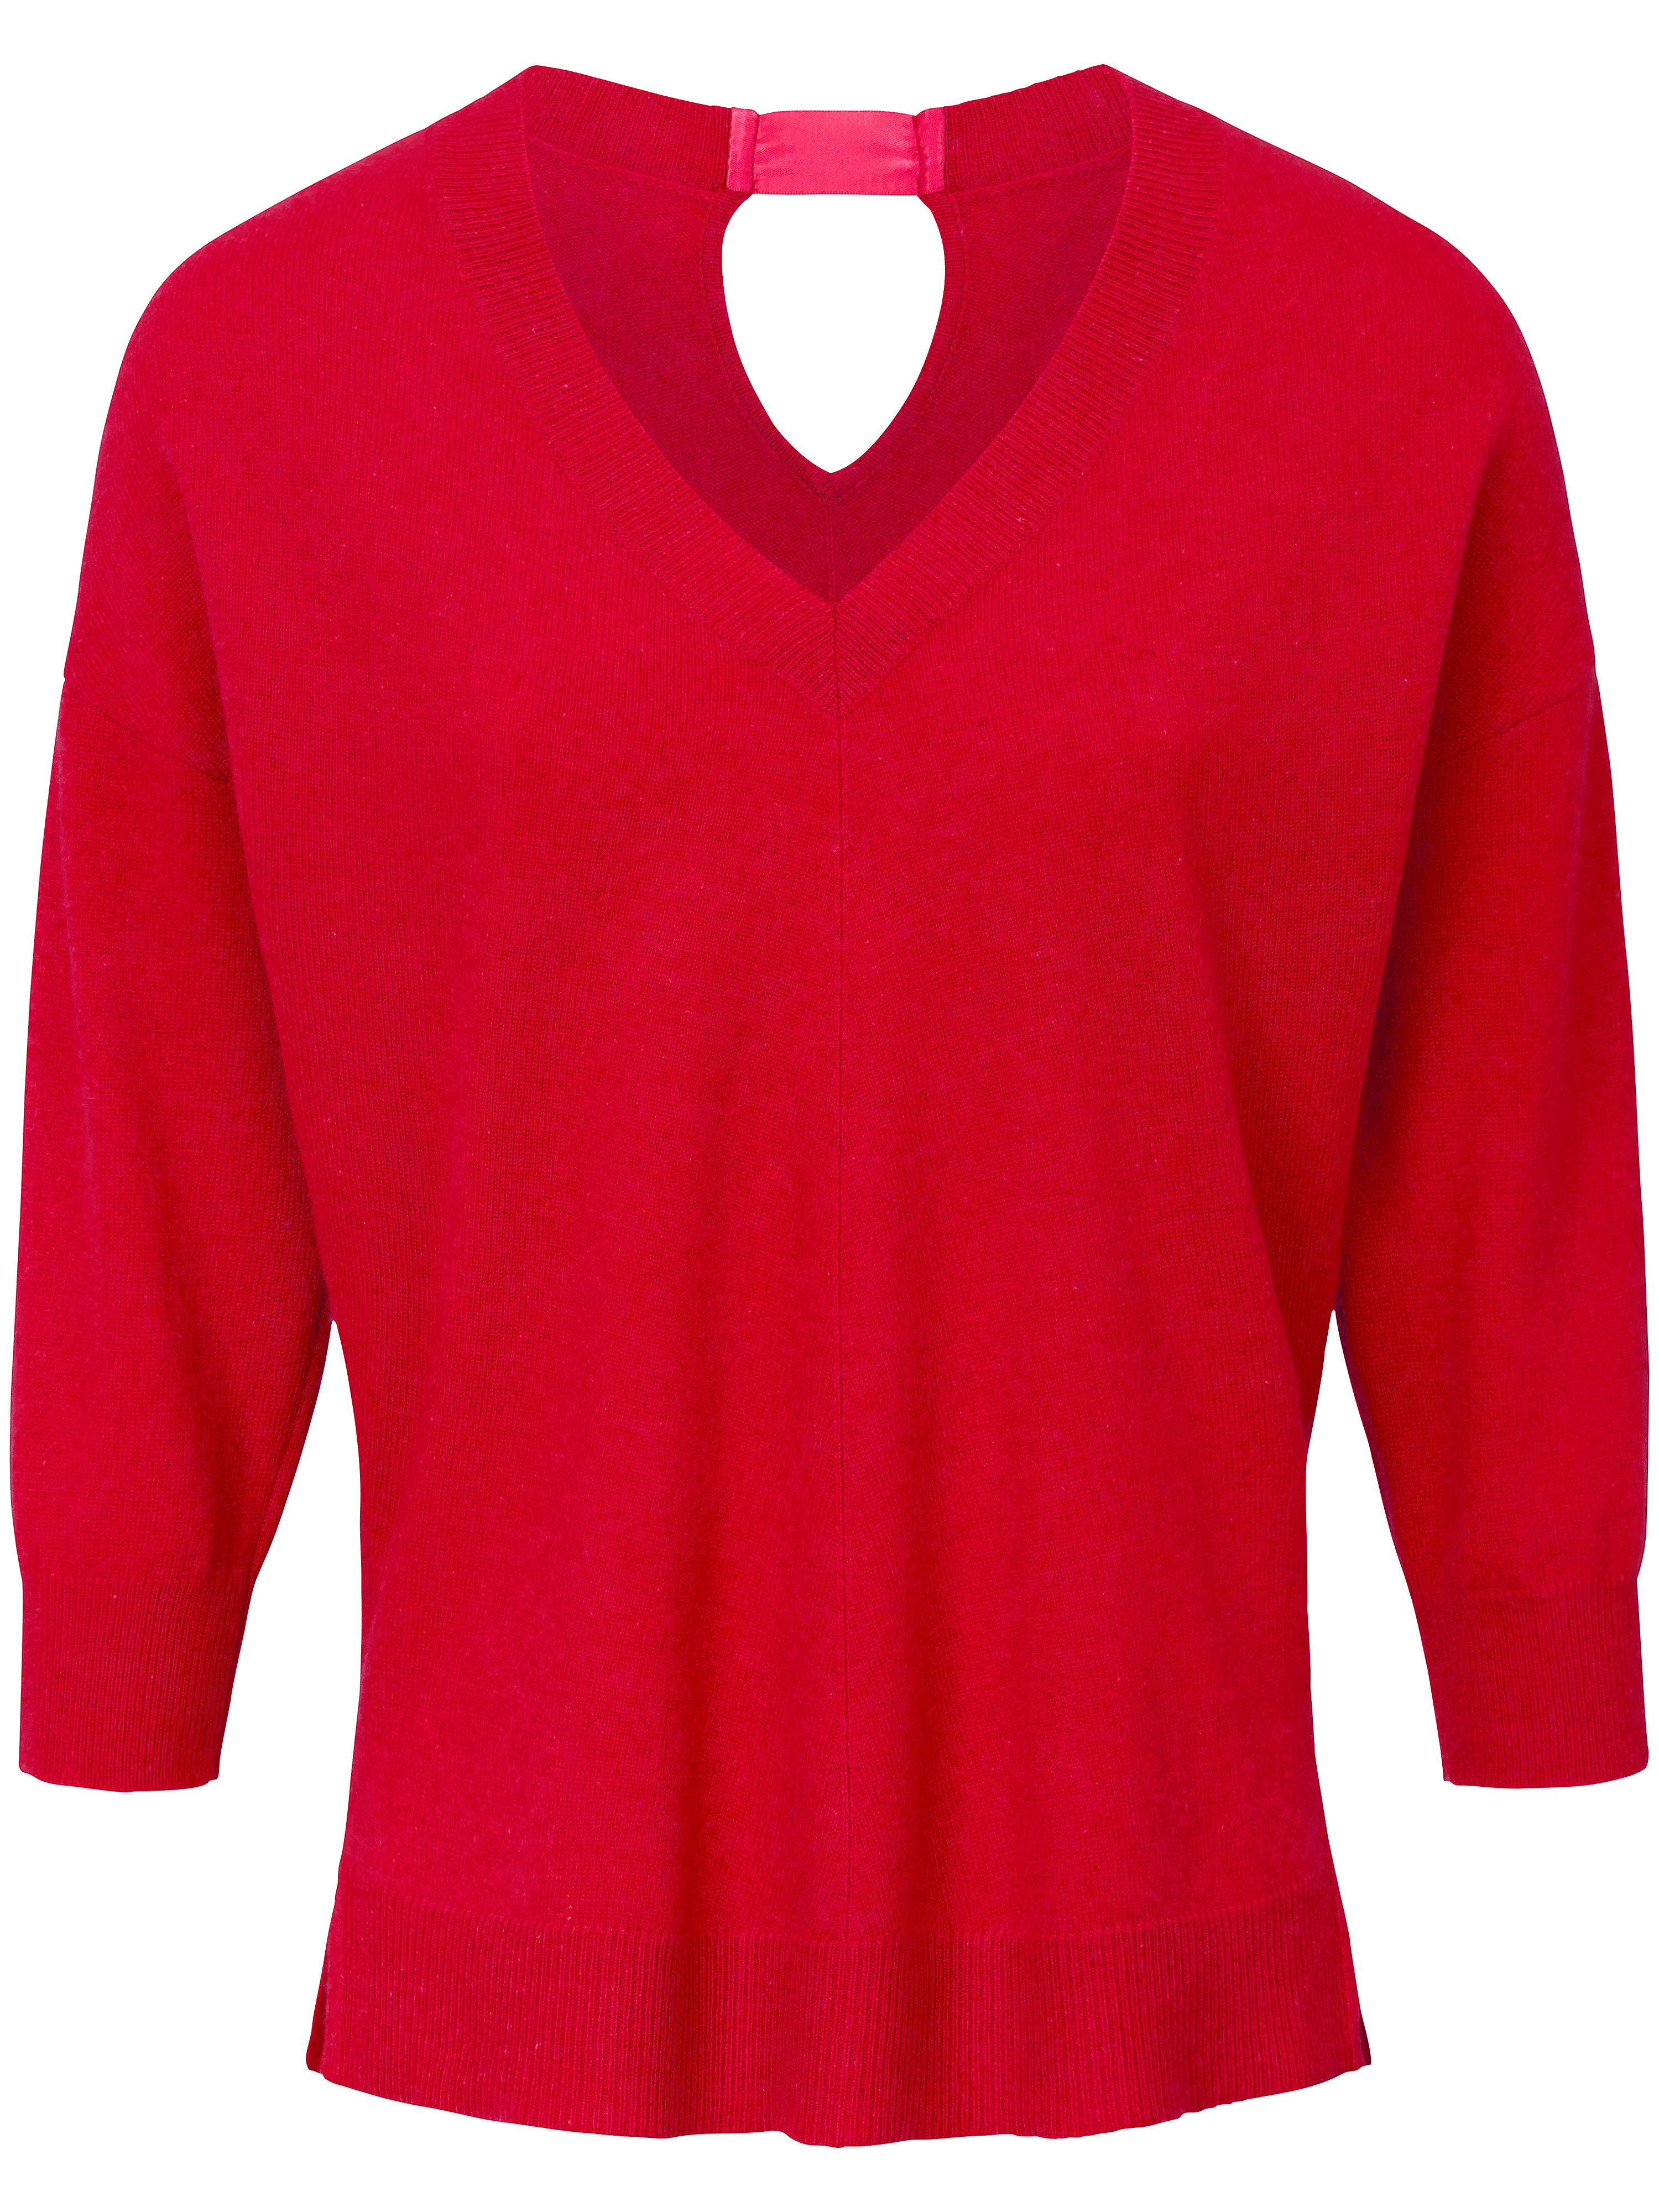 Le pull 100% cachemire manches 3/4  include rouge taille 46